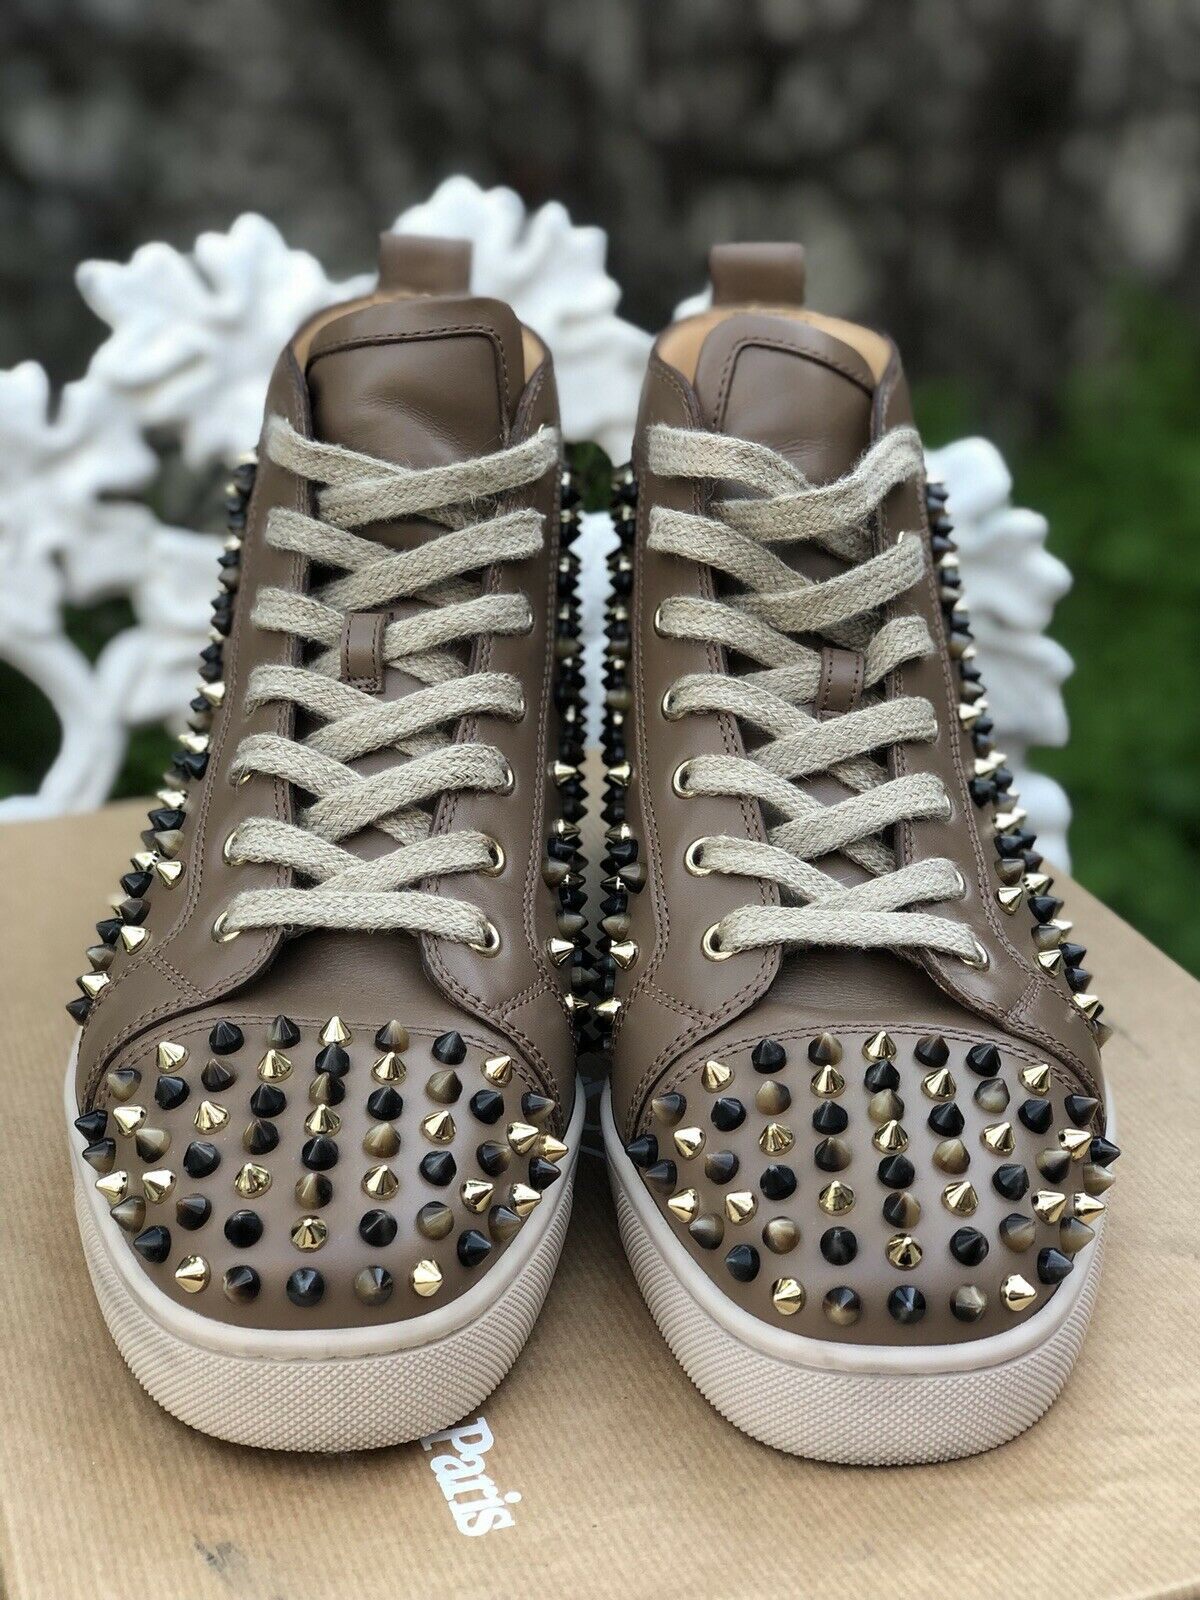 Authentic Christian Louboutin Louis Flat Calf Spikes POP Corn Sneakers 41.5